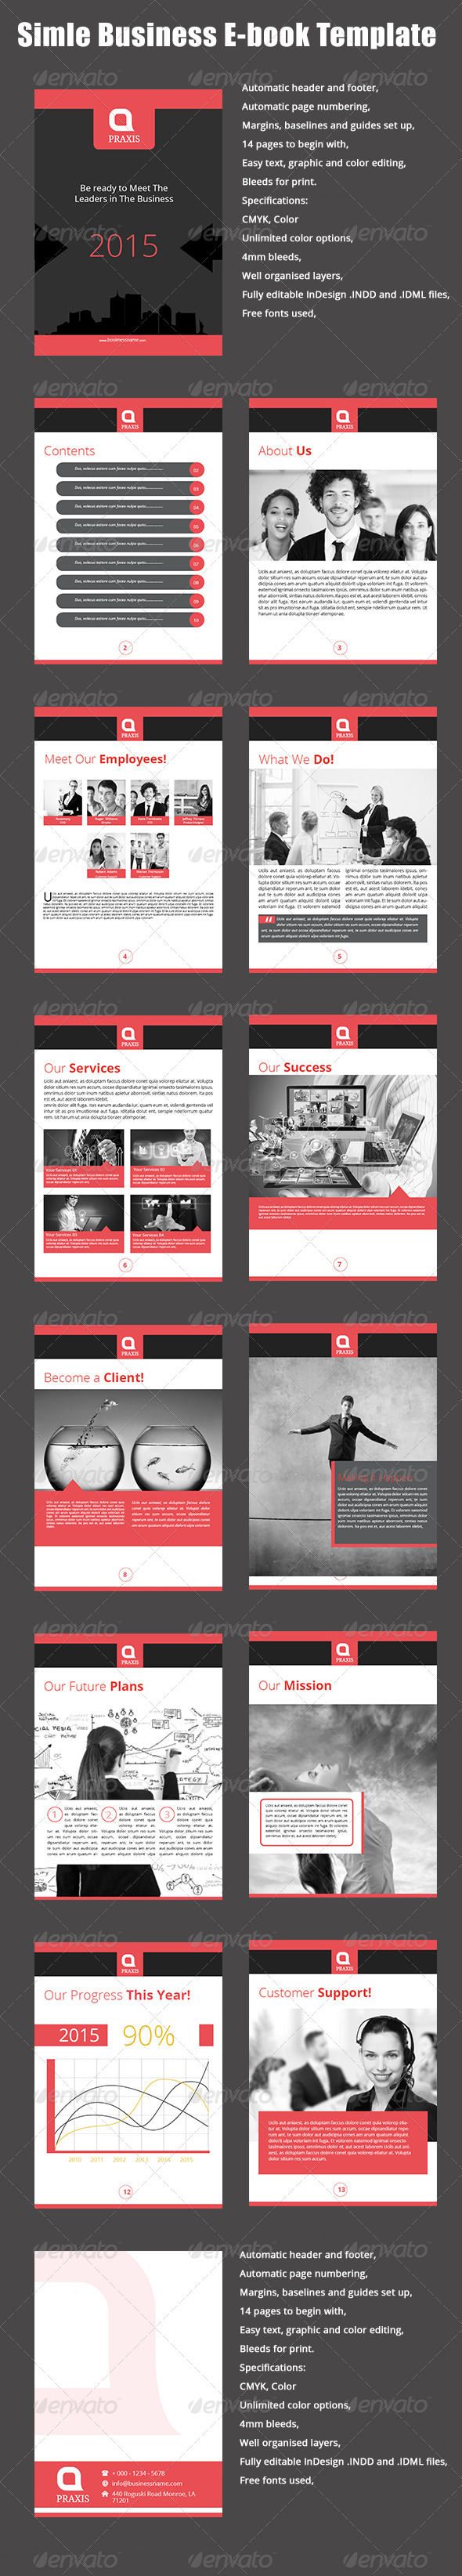 GraphicRiver Simple Business E-book Template 8147961